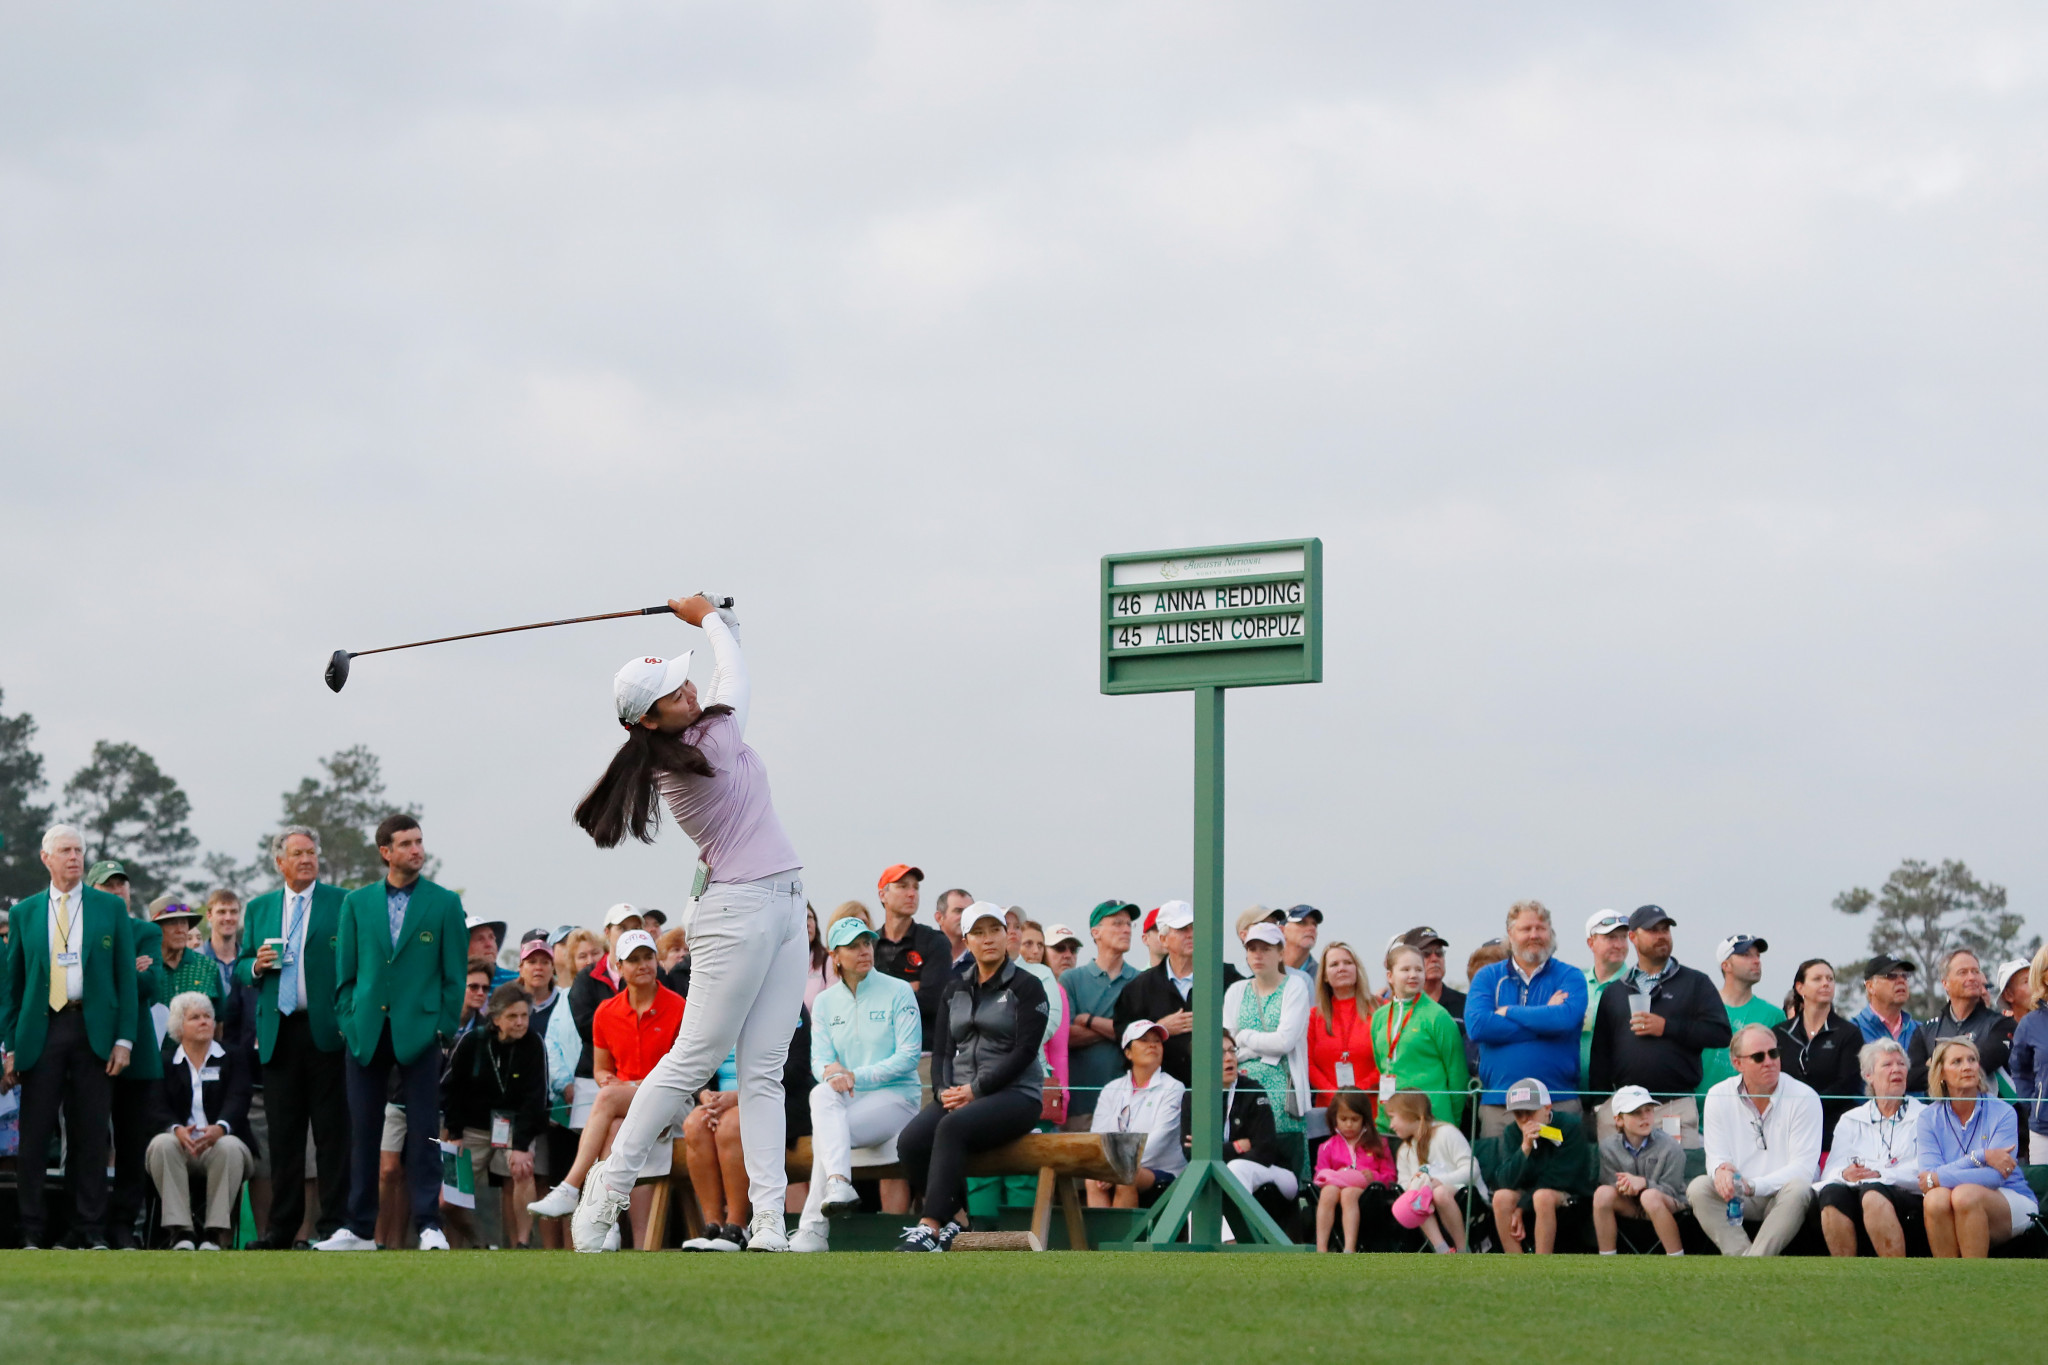 Ladies Professional Golf Association legends hit ceremonial tee shots to open the first competitive round of women's golf to be held at Augusta National ©Getty Images